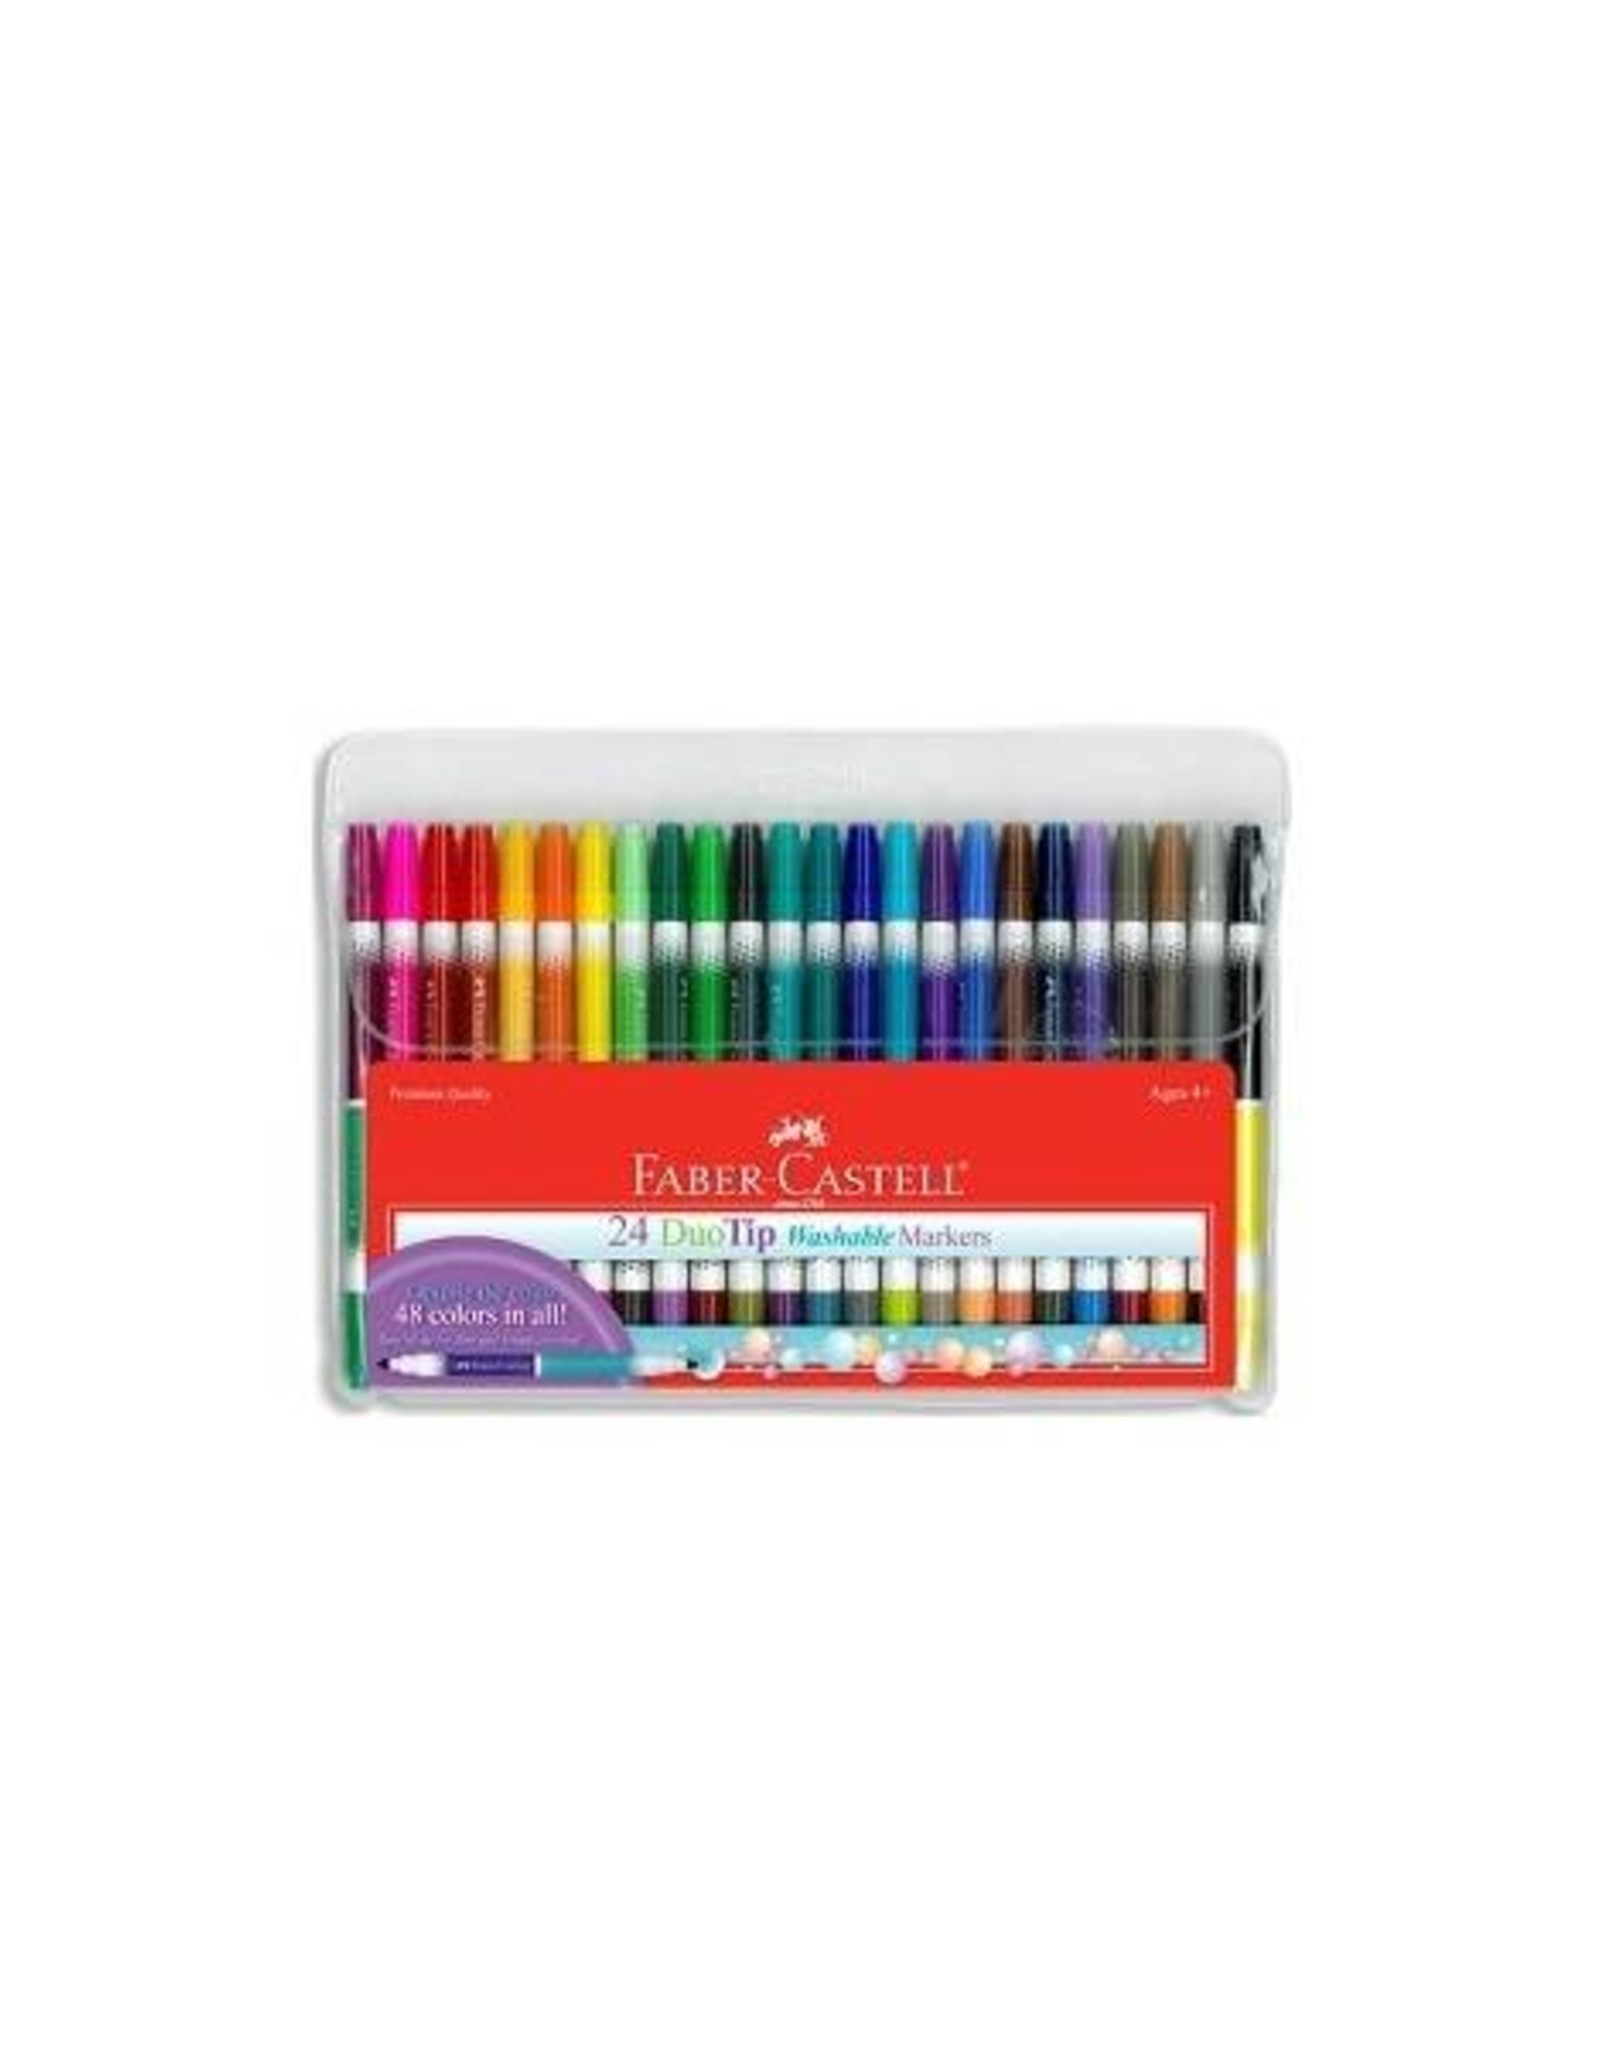 Faber Castell 24ct DuoTip Washable Markers